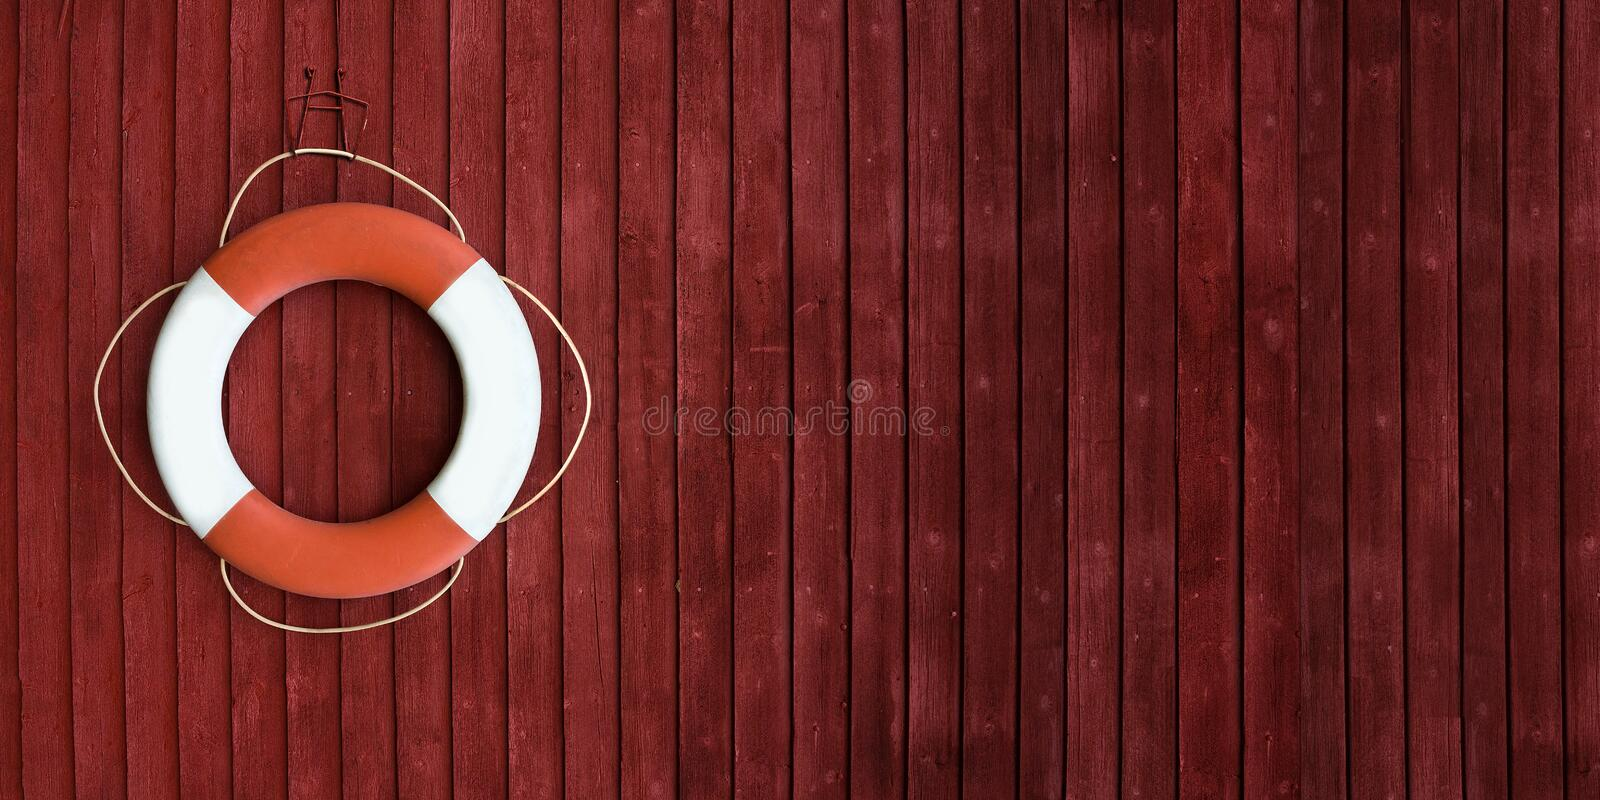 Red and white life buoy on the side of a wooden ship. Red and white life buoy hanging on the side of a wooden ship royalty free stock images